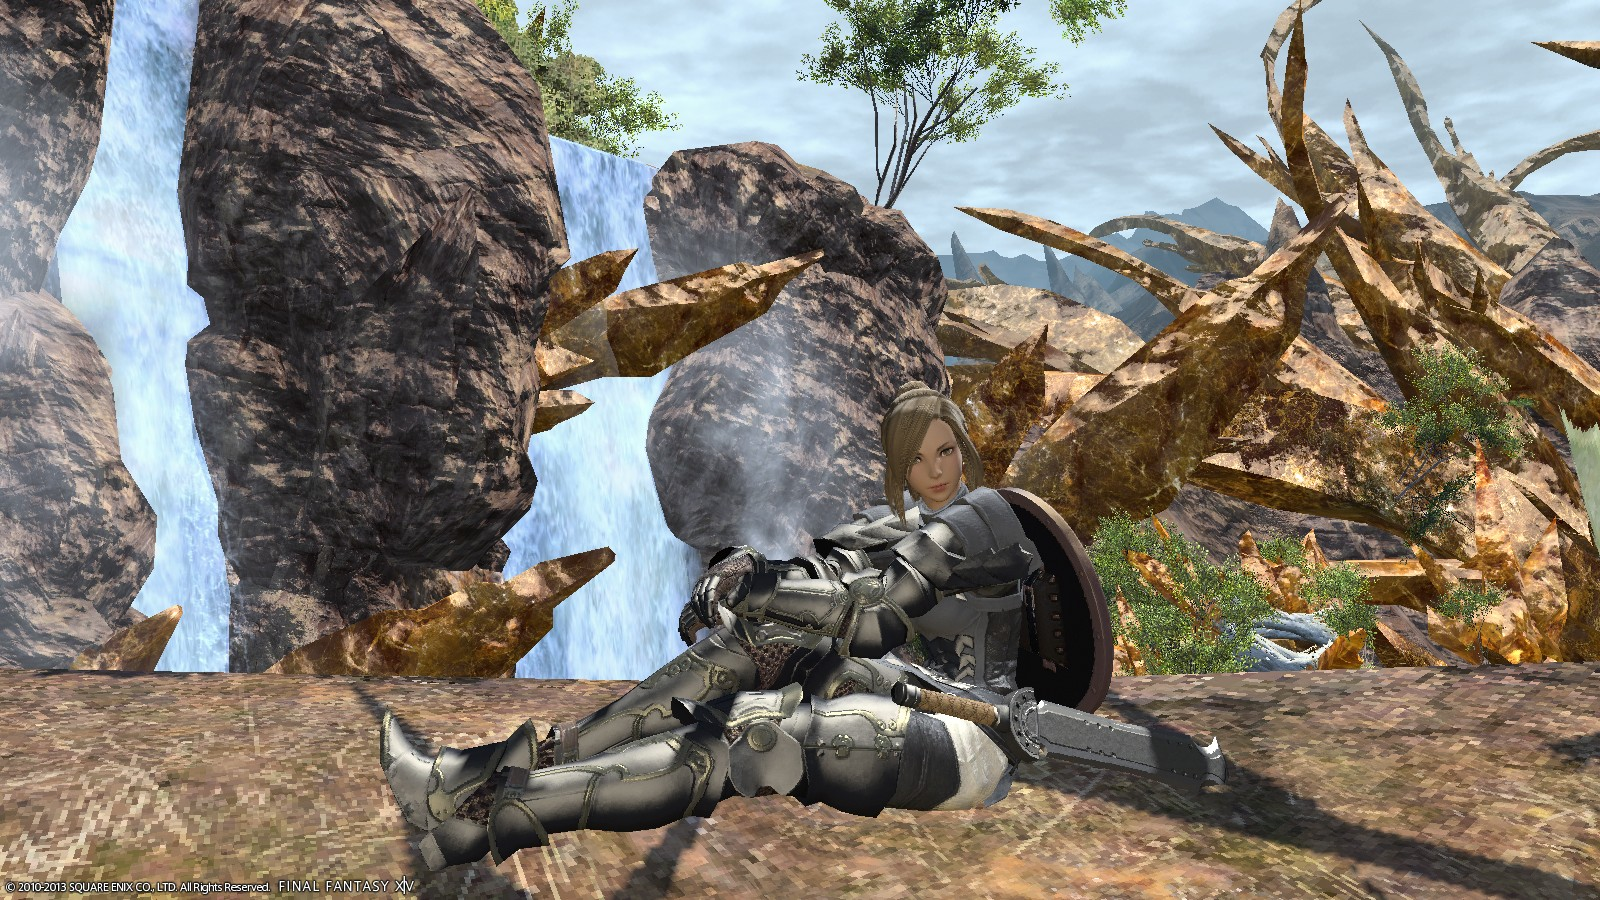 Final Fantasy XIV: A Realm Reborn - Taking a break to enjoy the view